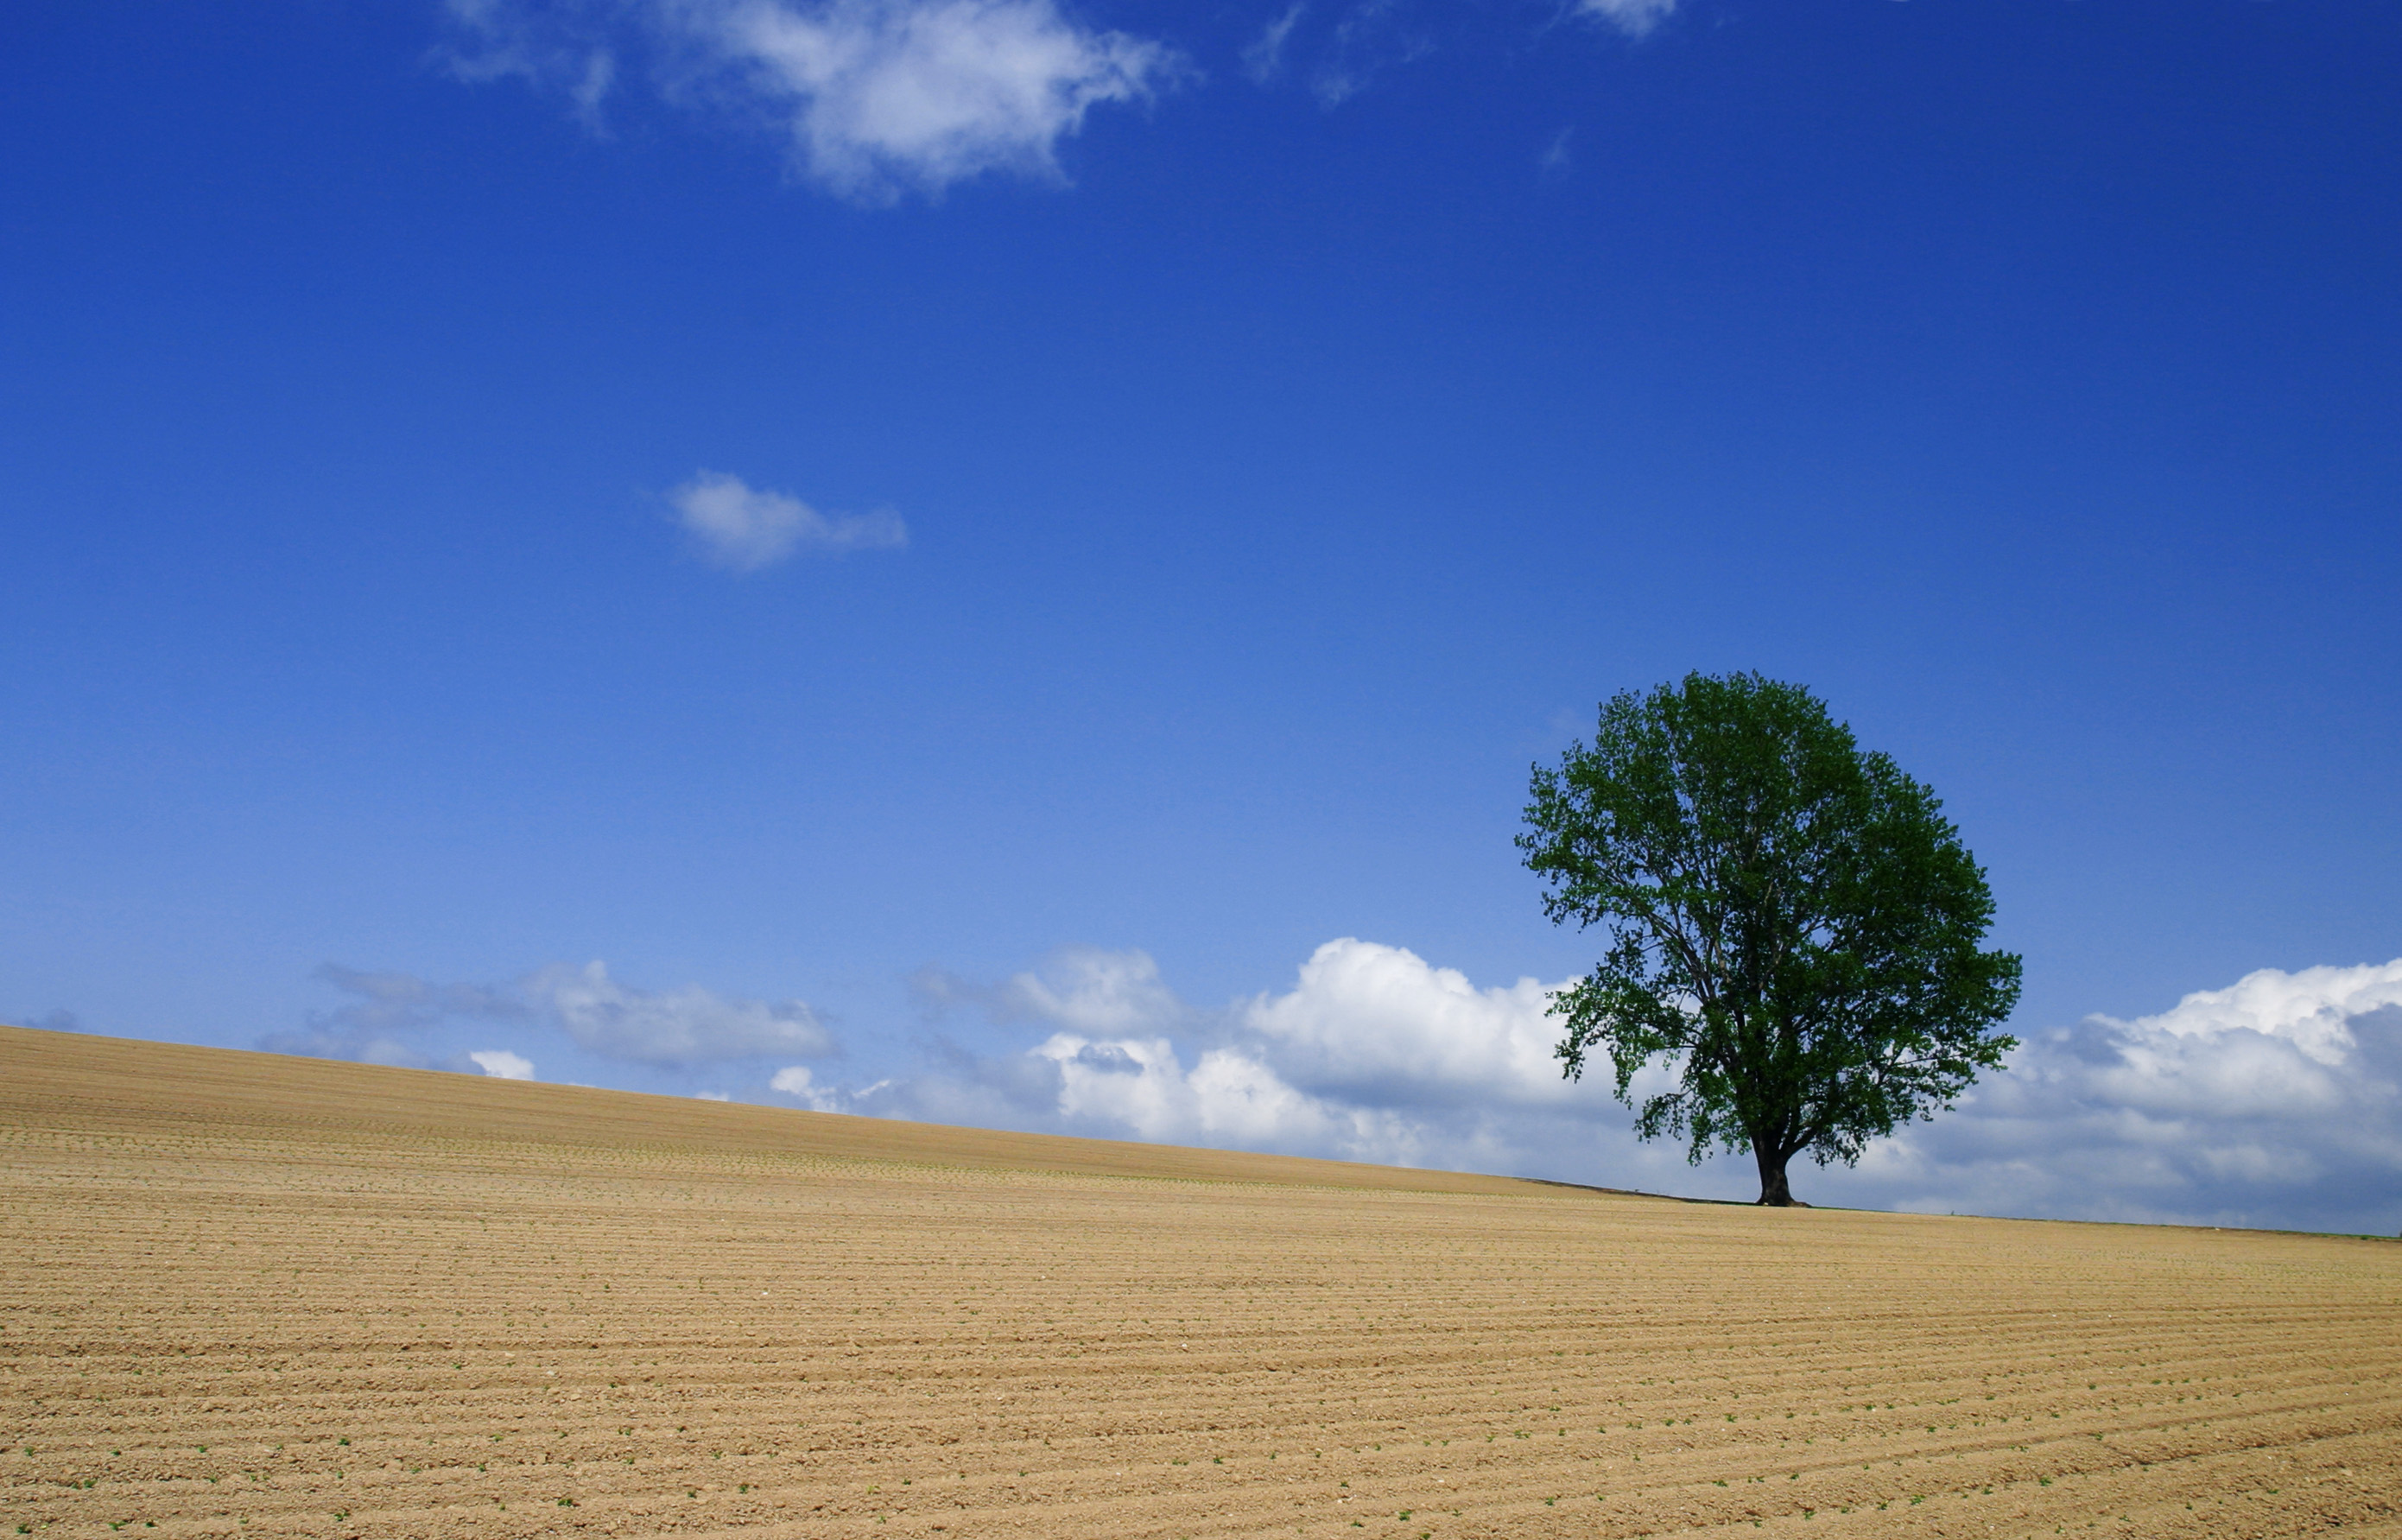 photo,material,free,landscape,picture,stock photo,Creative Commons,Summer of the tree of philosophy, field, tree, blue sky, cloud